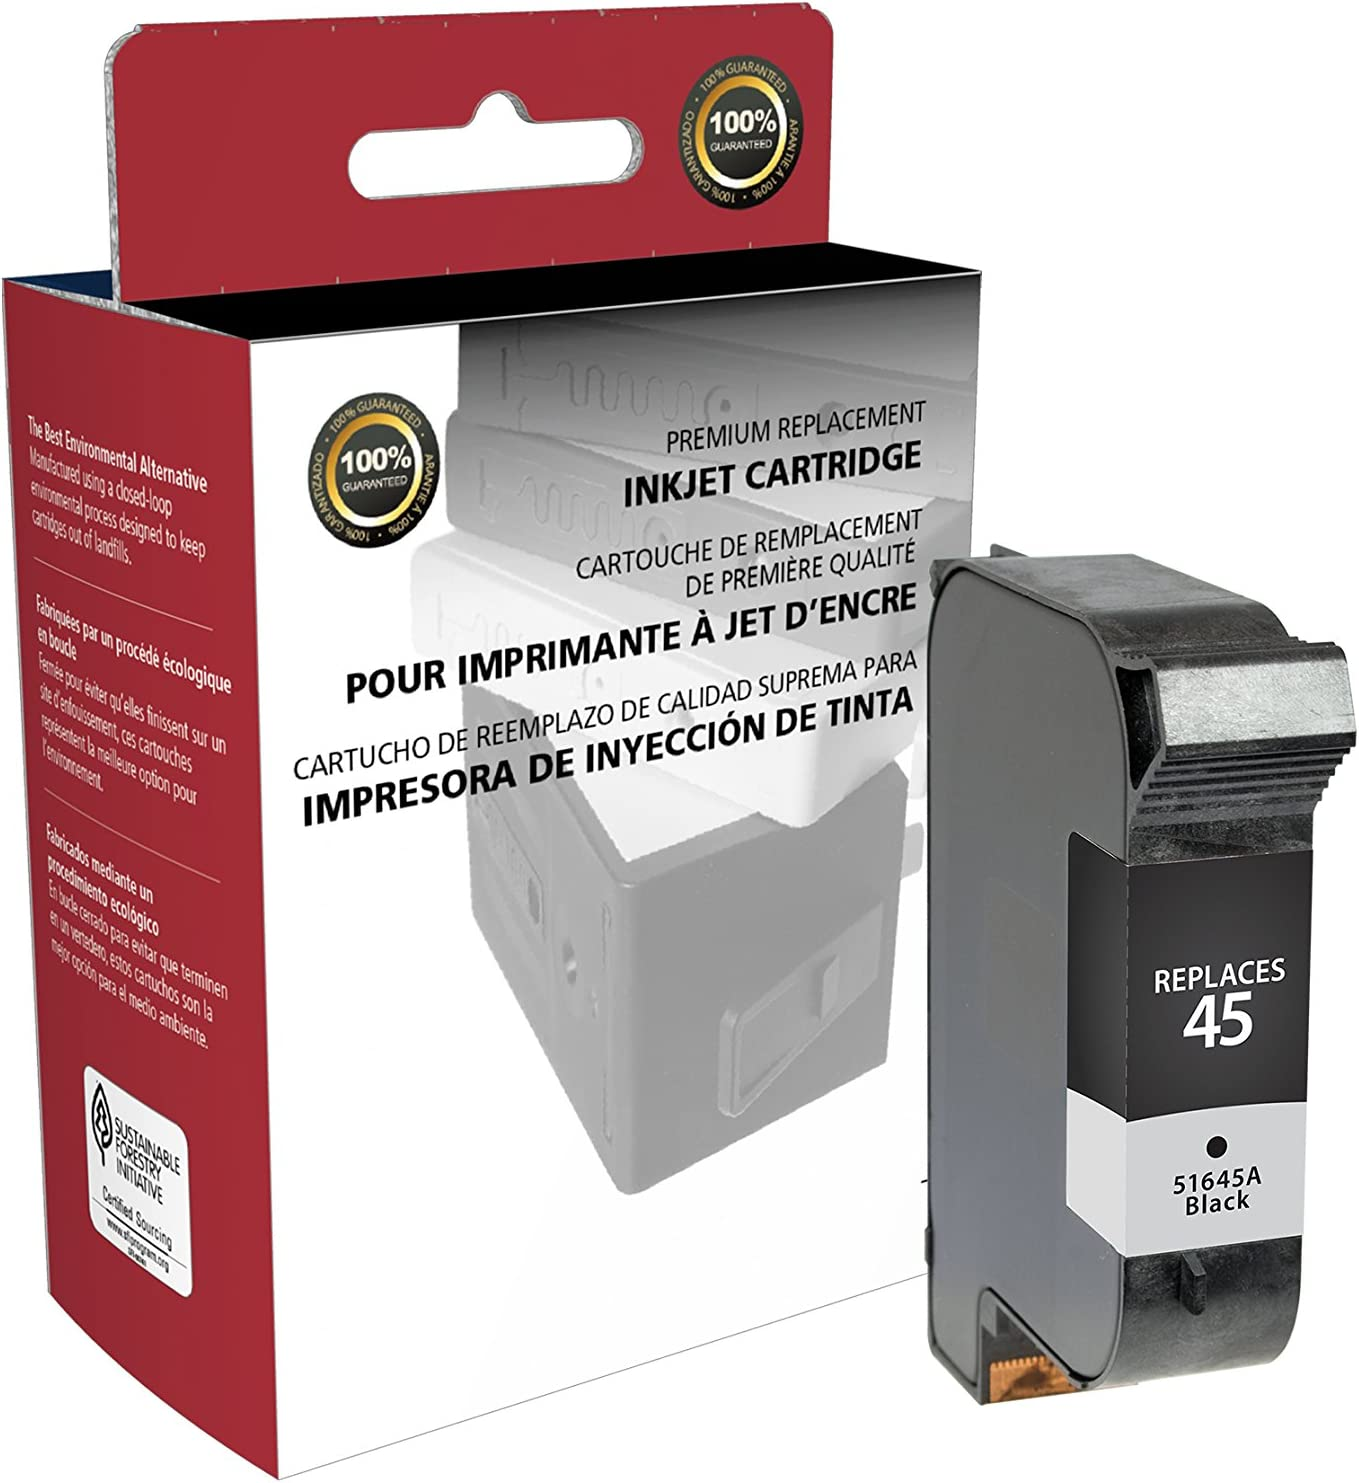 Inksters New Build Ink Cartridge Replacement for HP 45 51645A (HP 45) - Black